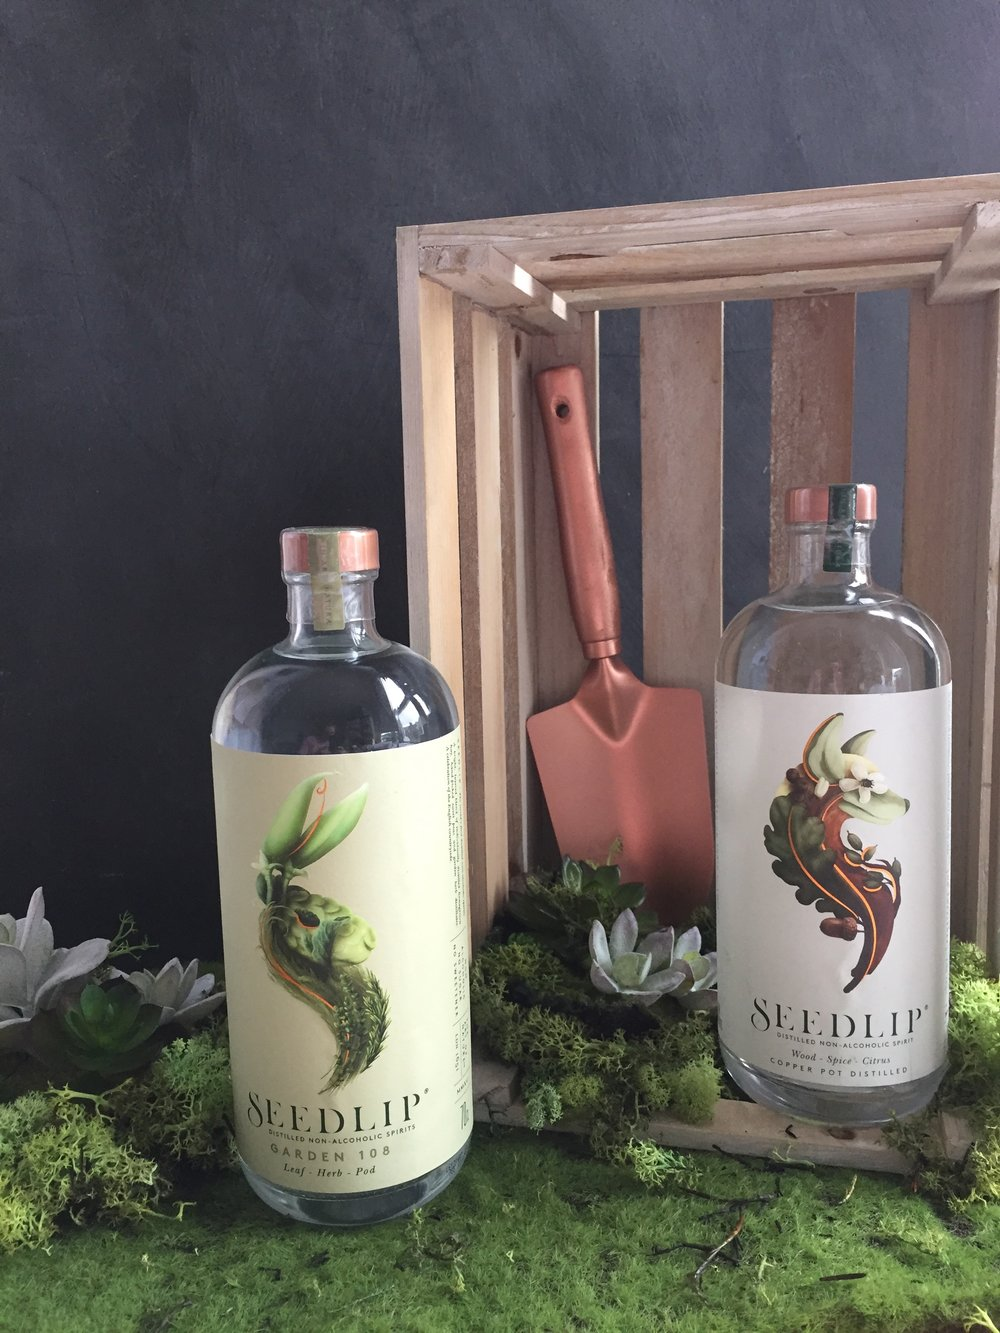 Seedlip/All Bar One Styling